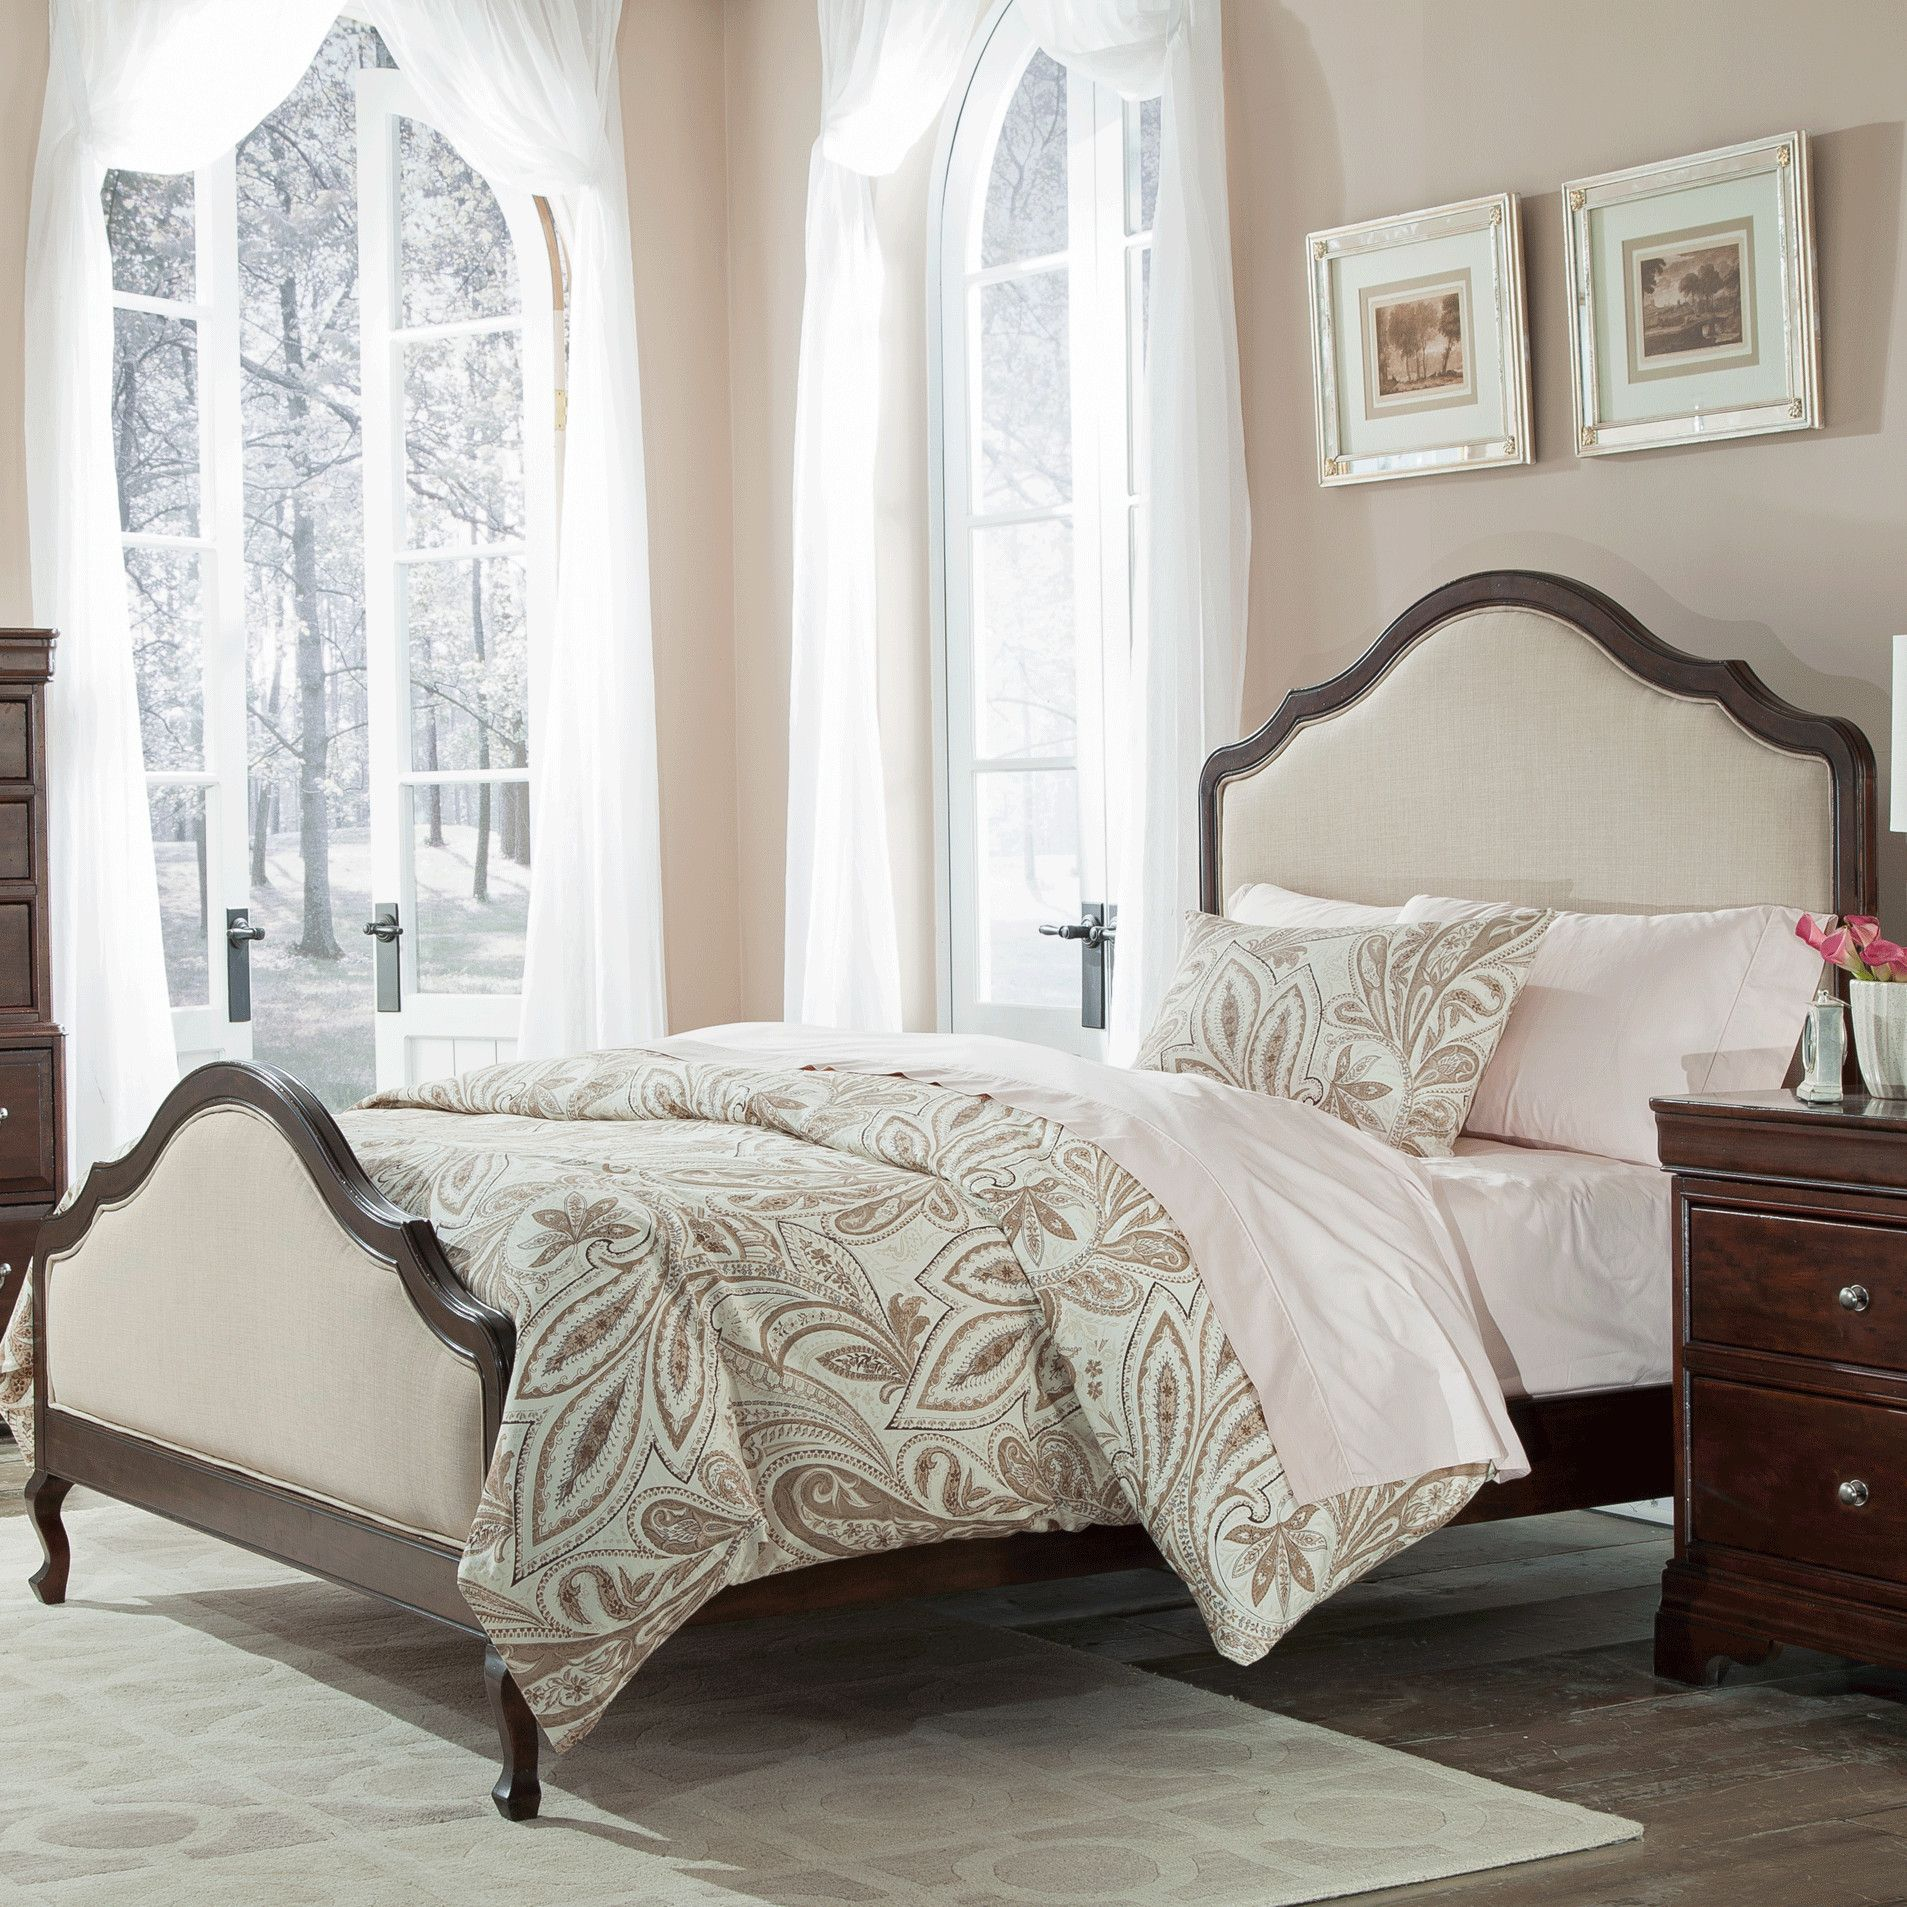 Cresent Furniture Provence Upholstered Panel Bed | New House: Master ...